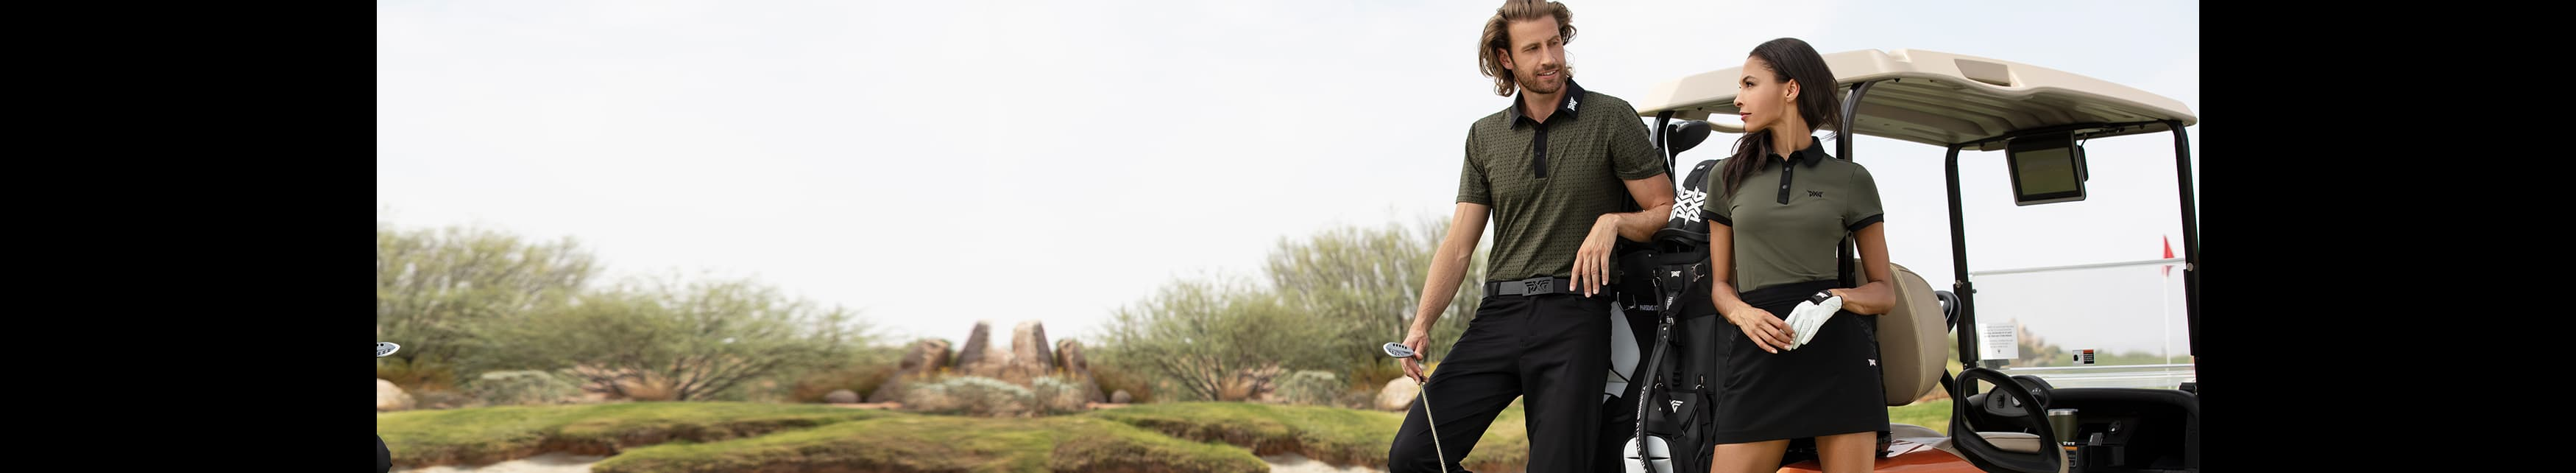 Fall/Winter 2020 Collection in a lodge setting - PXG Takes You There